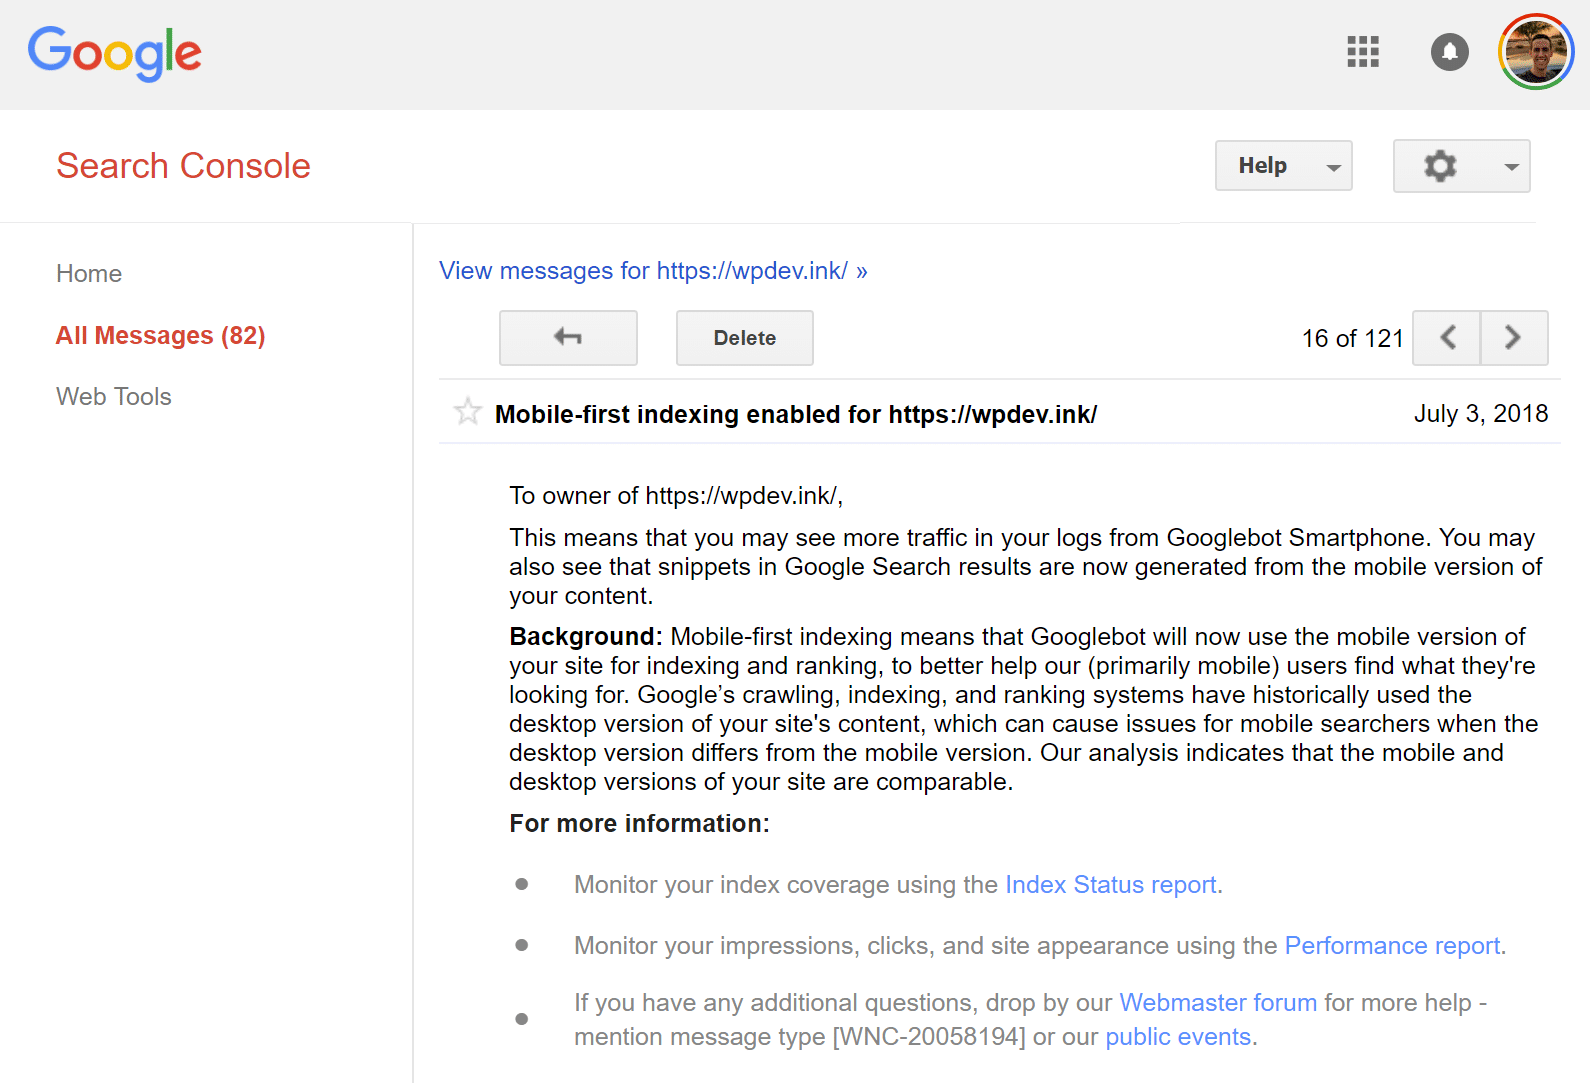 Mobile-first indexing enabled email from Google